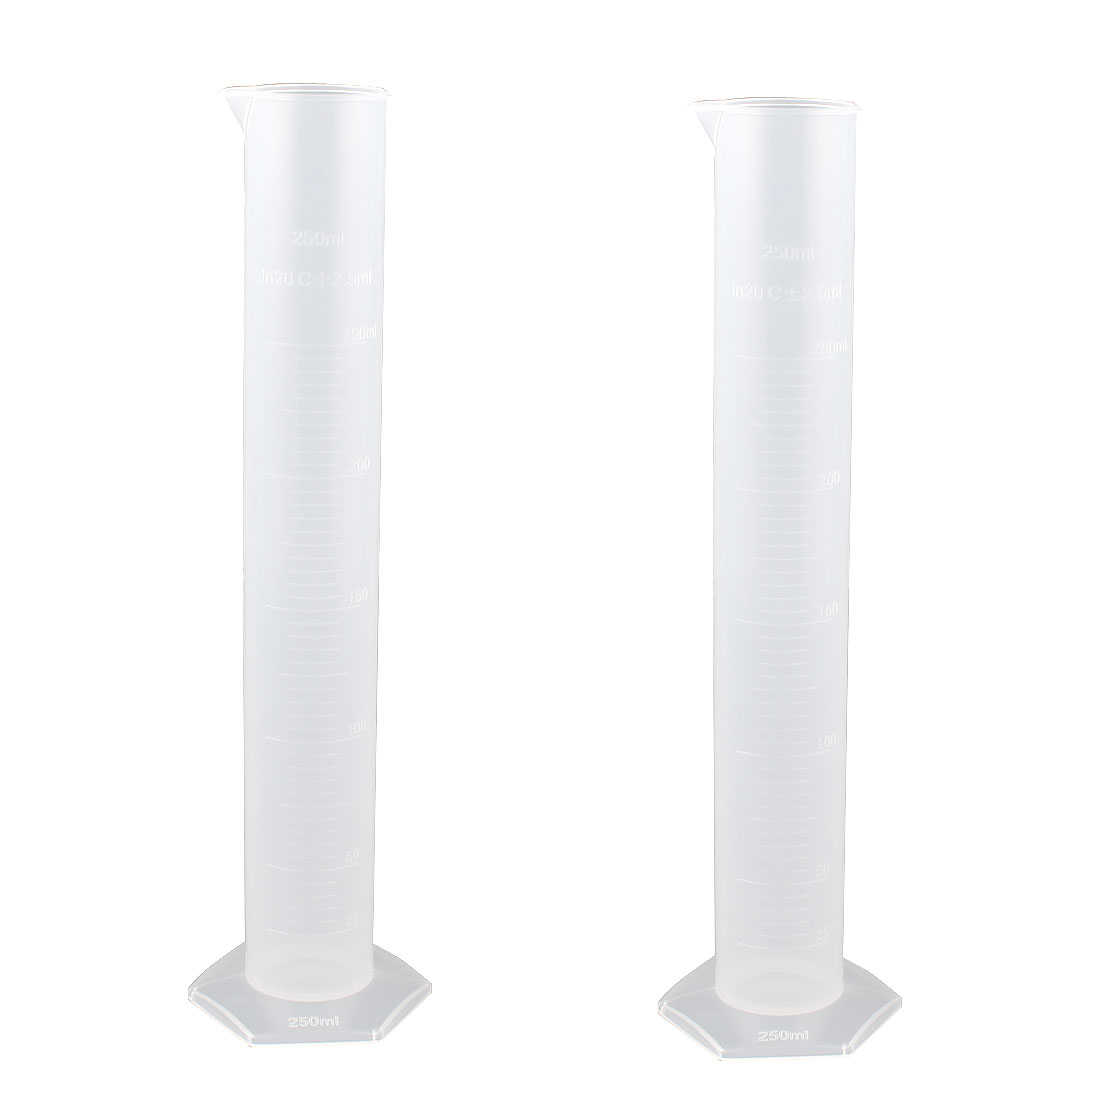 250ml Clear Plastic Cylinder Lab Liquid Container Graduated Measuring Beaker Cup 2 Pcs